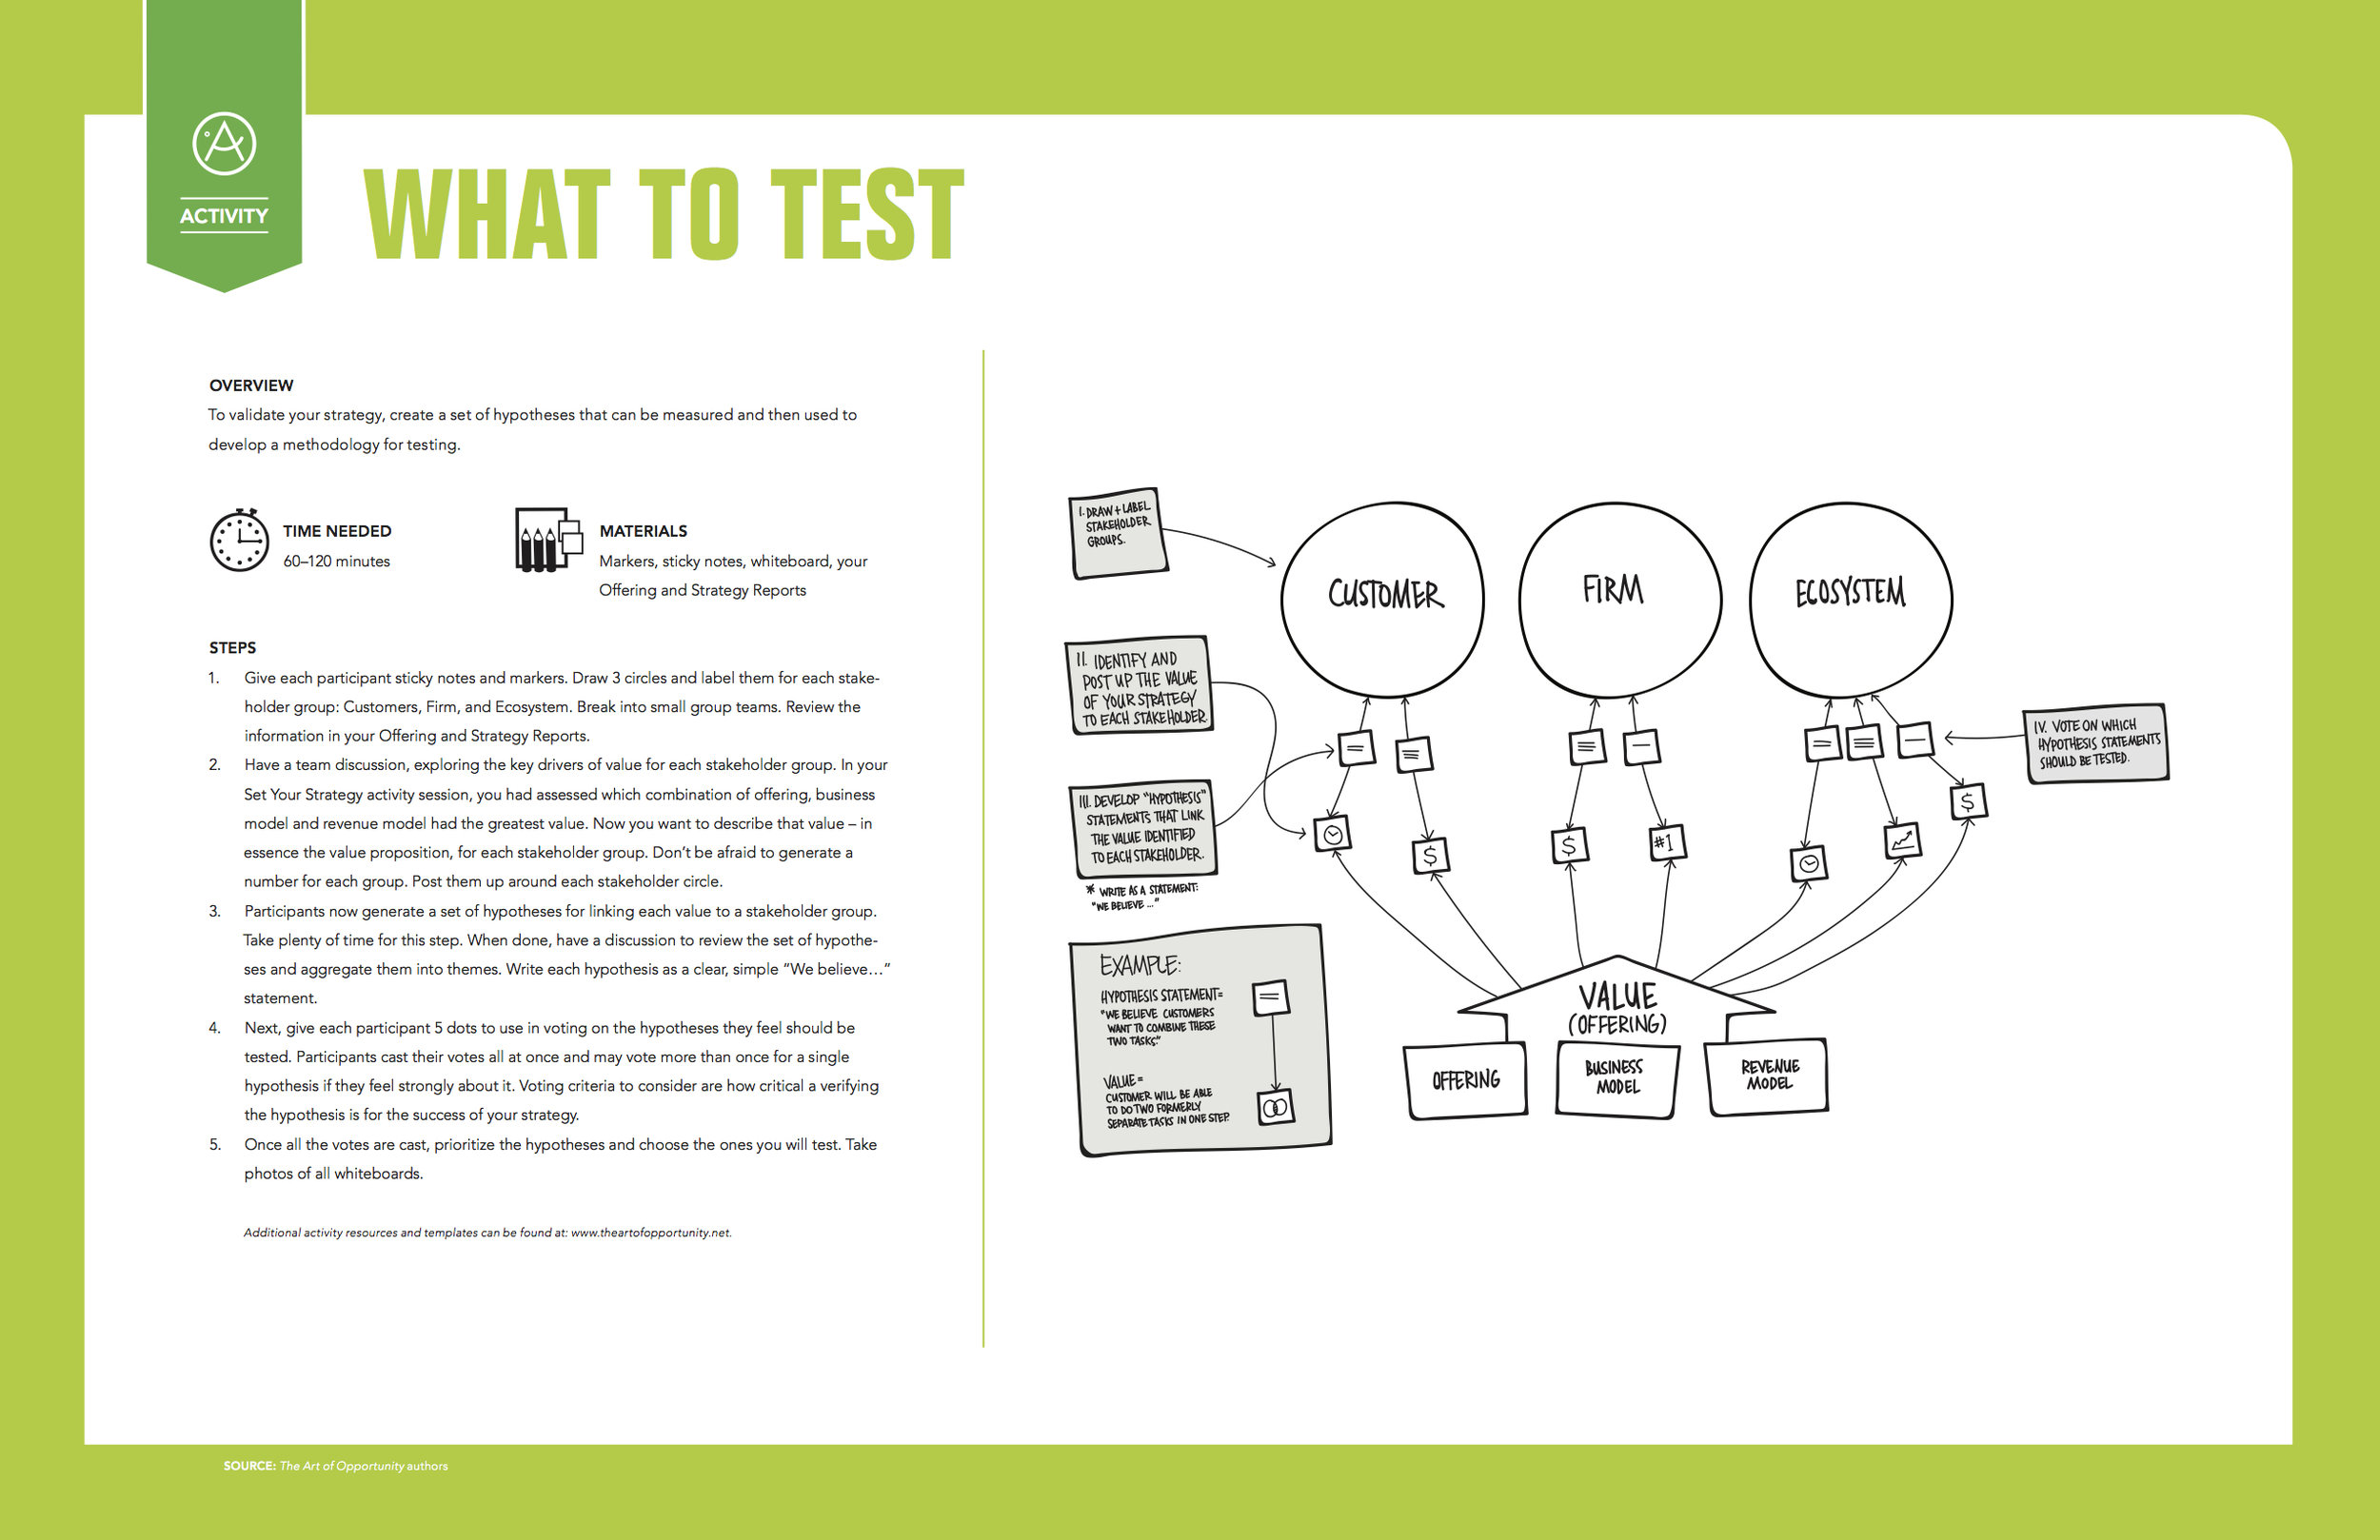 Activity: What to Test